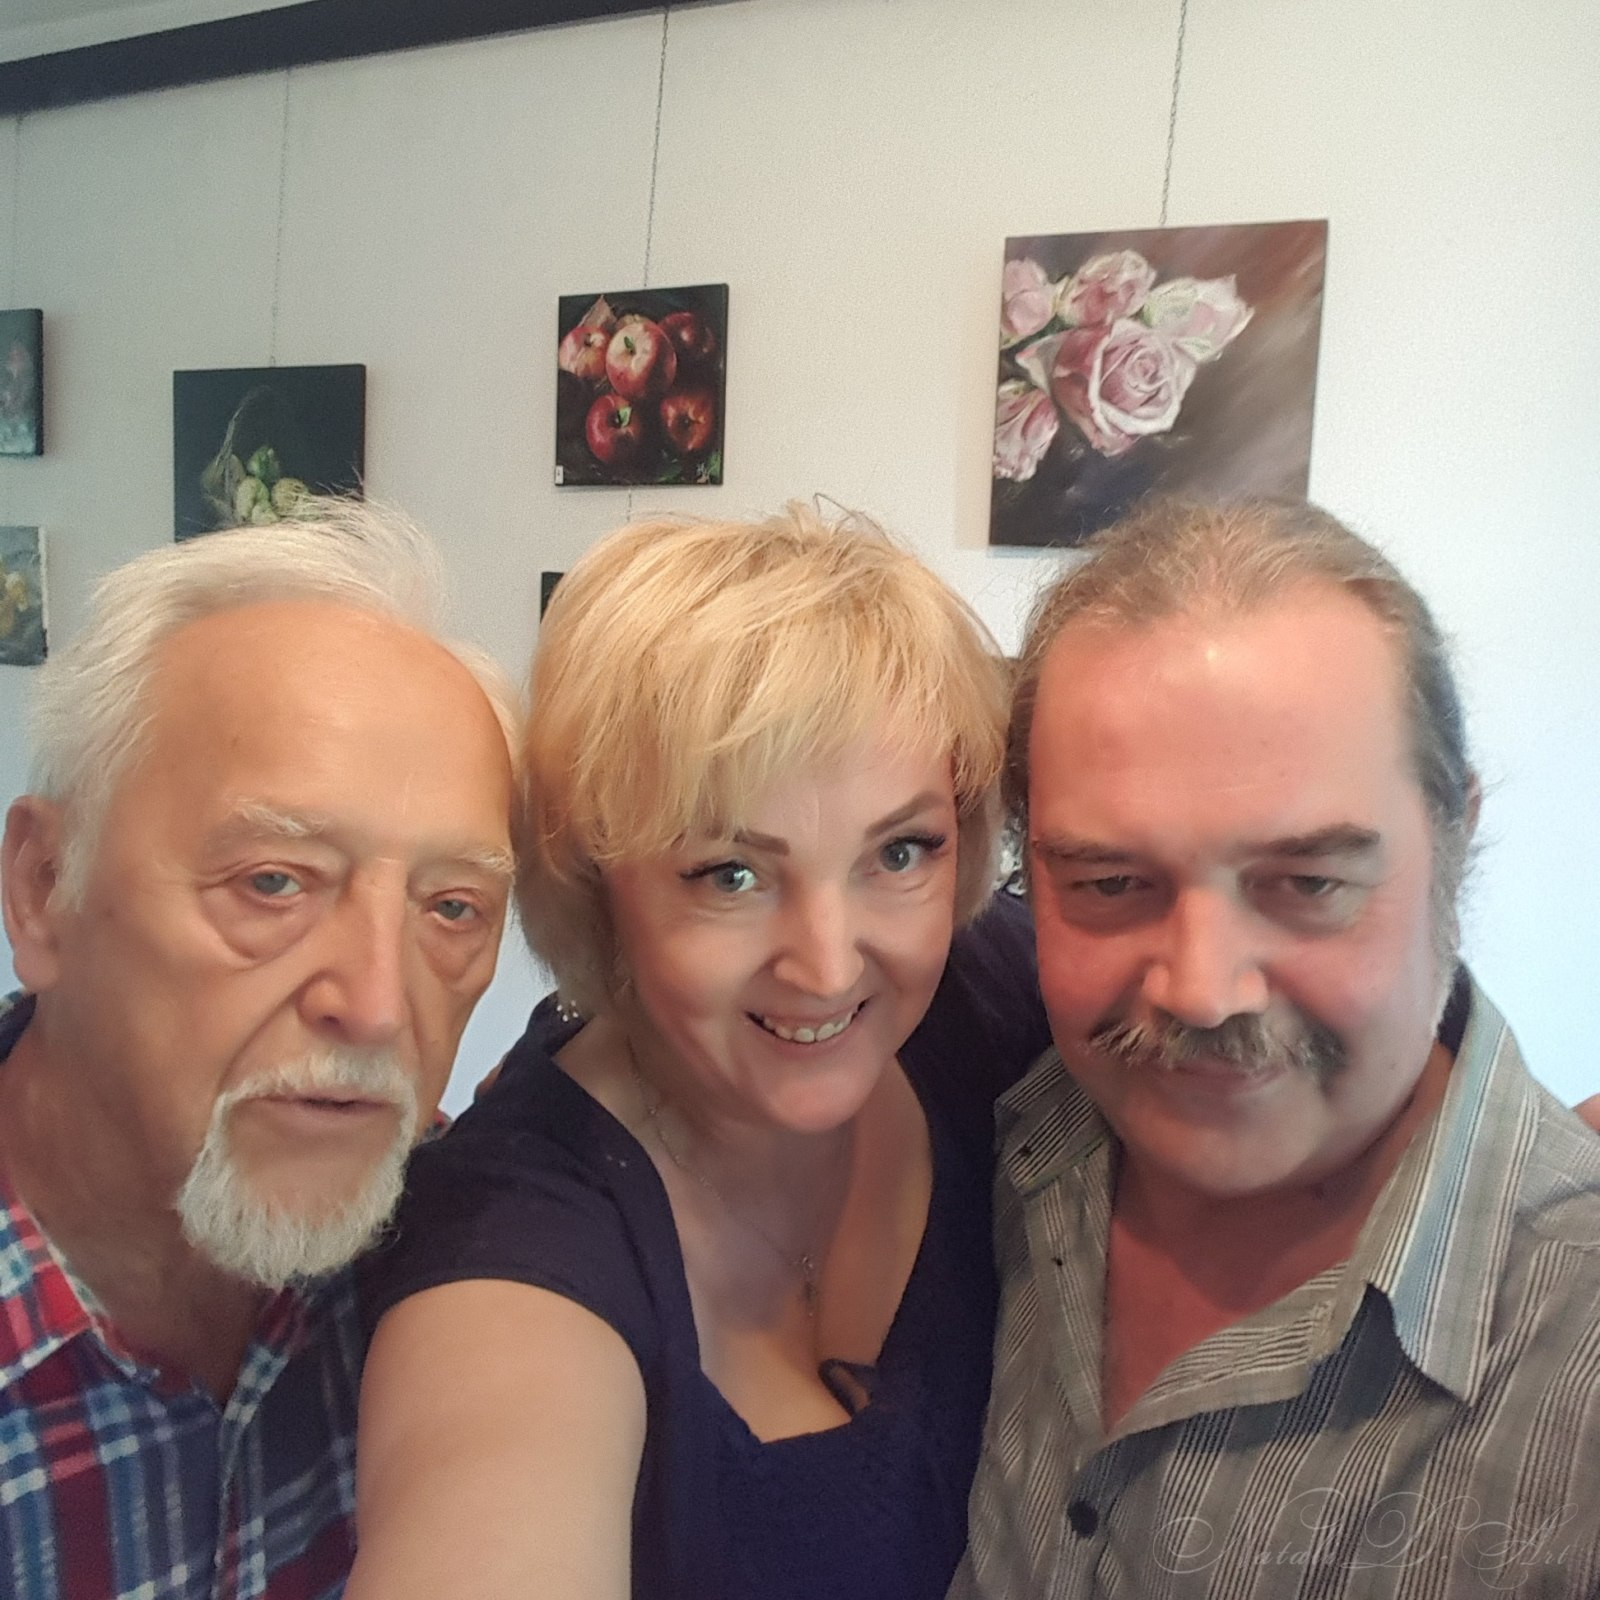 Pan Janusz, me and my friend  artistTigran